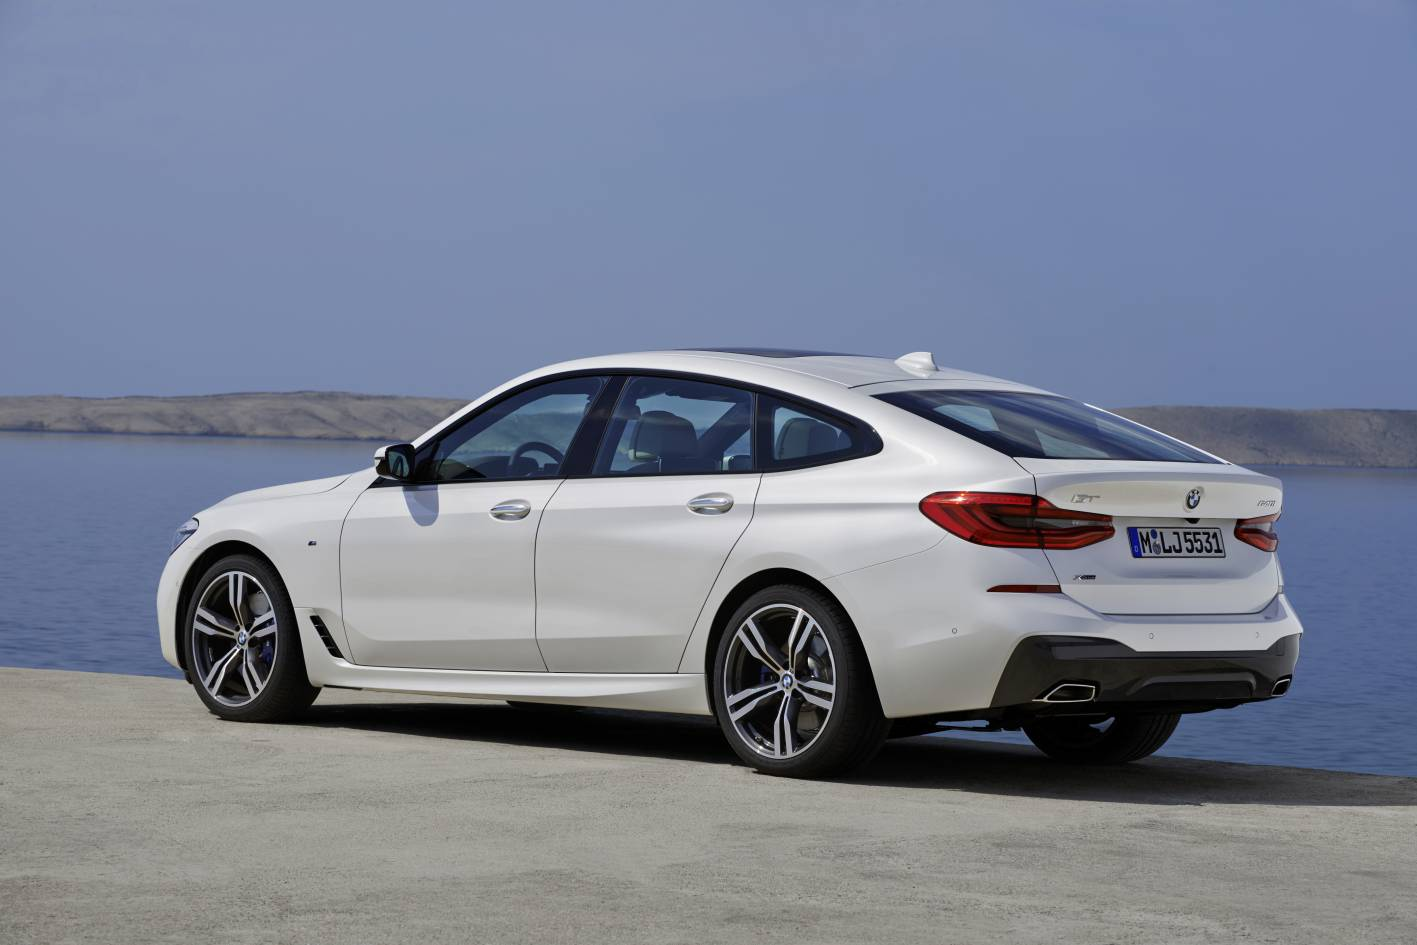 new bmw 6 series gt unveiled replaces 5 series gt. Black Bedroom Furniture Sets. Home Design Ideas